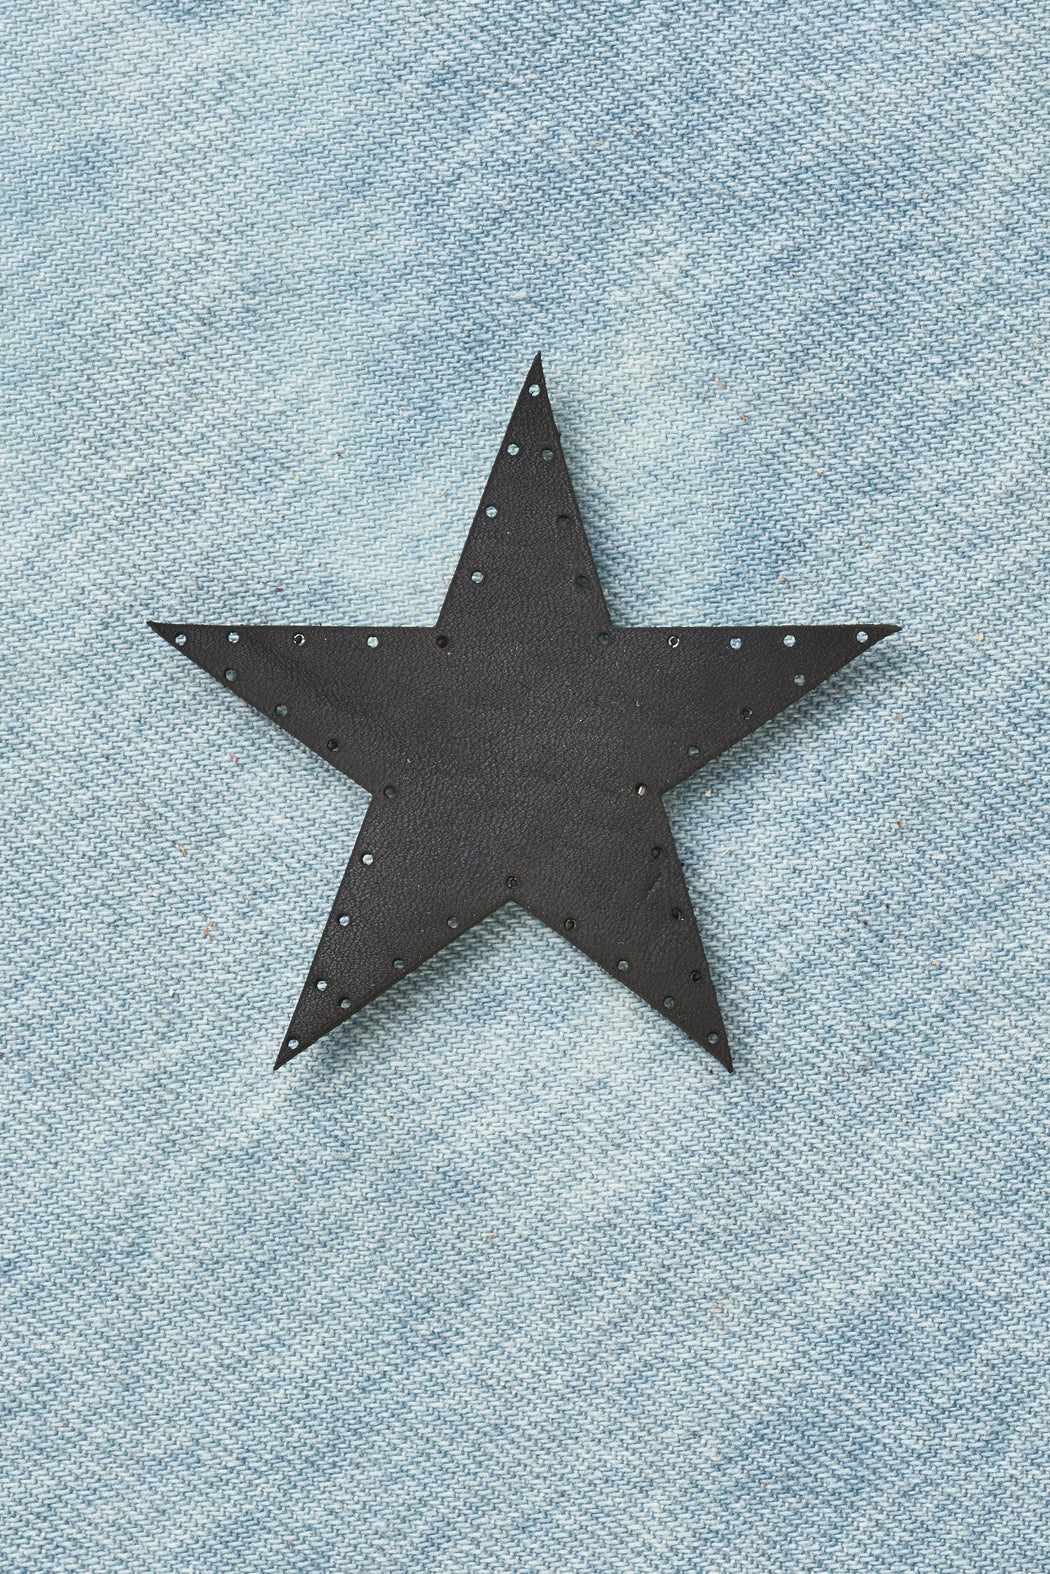 Star Patch - Black Leather